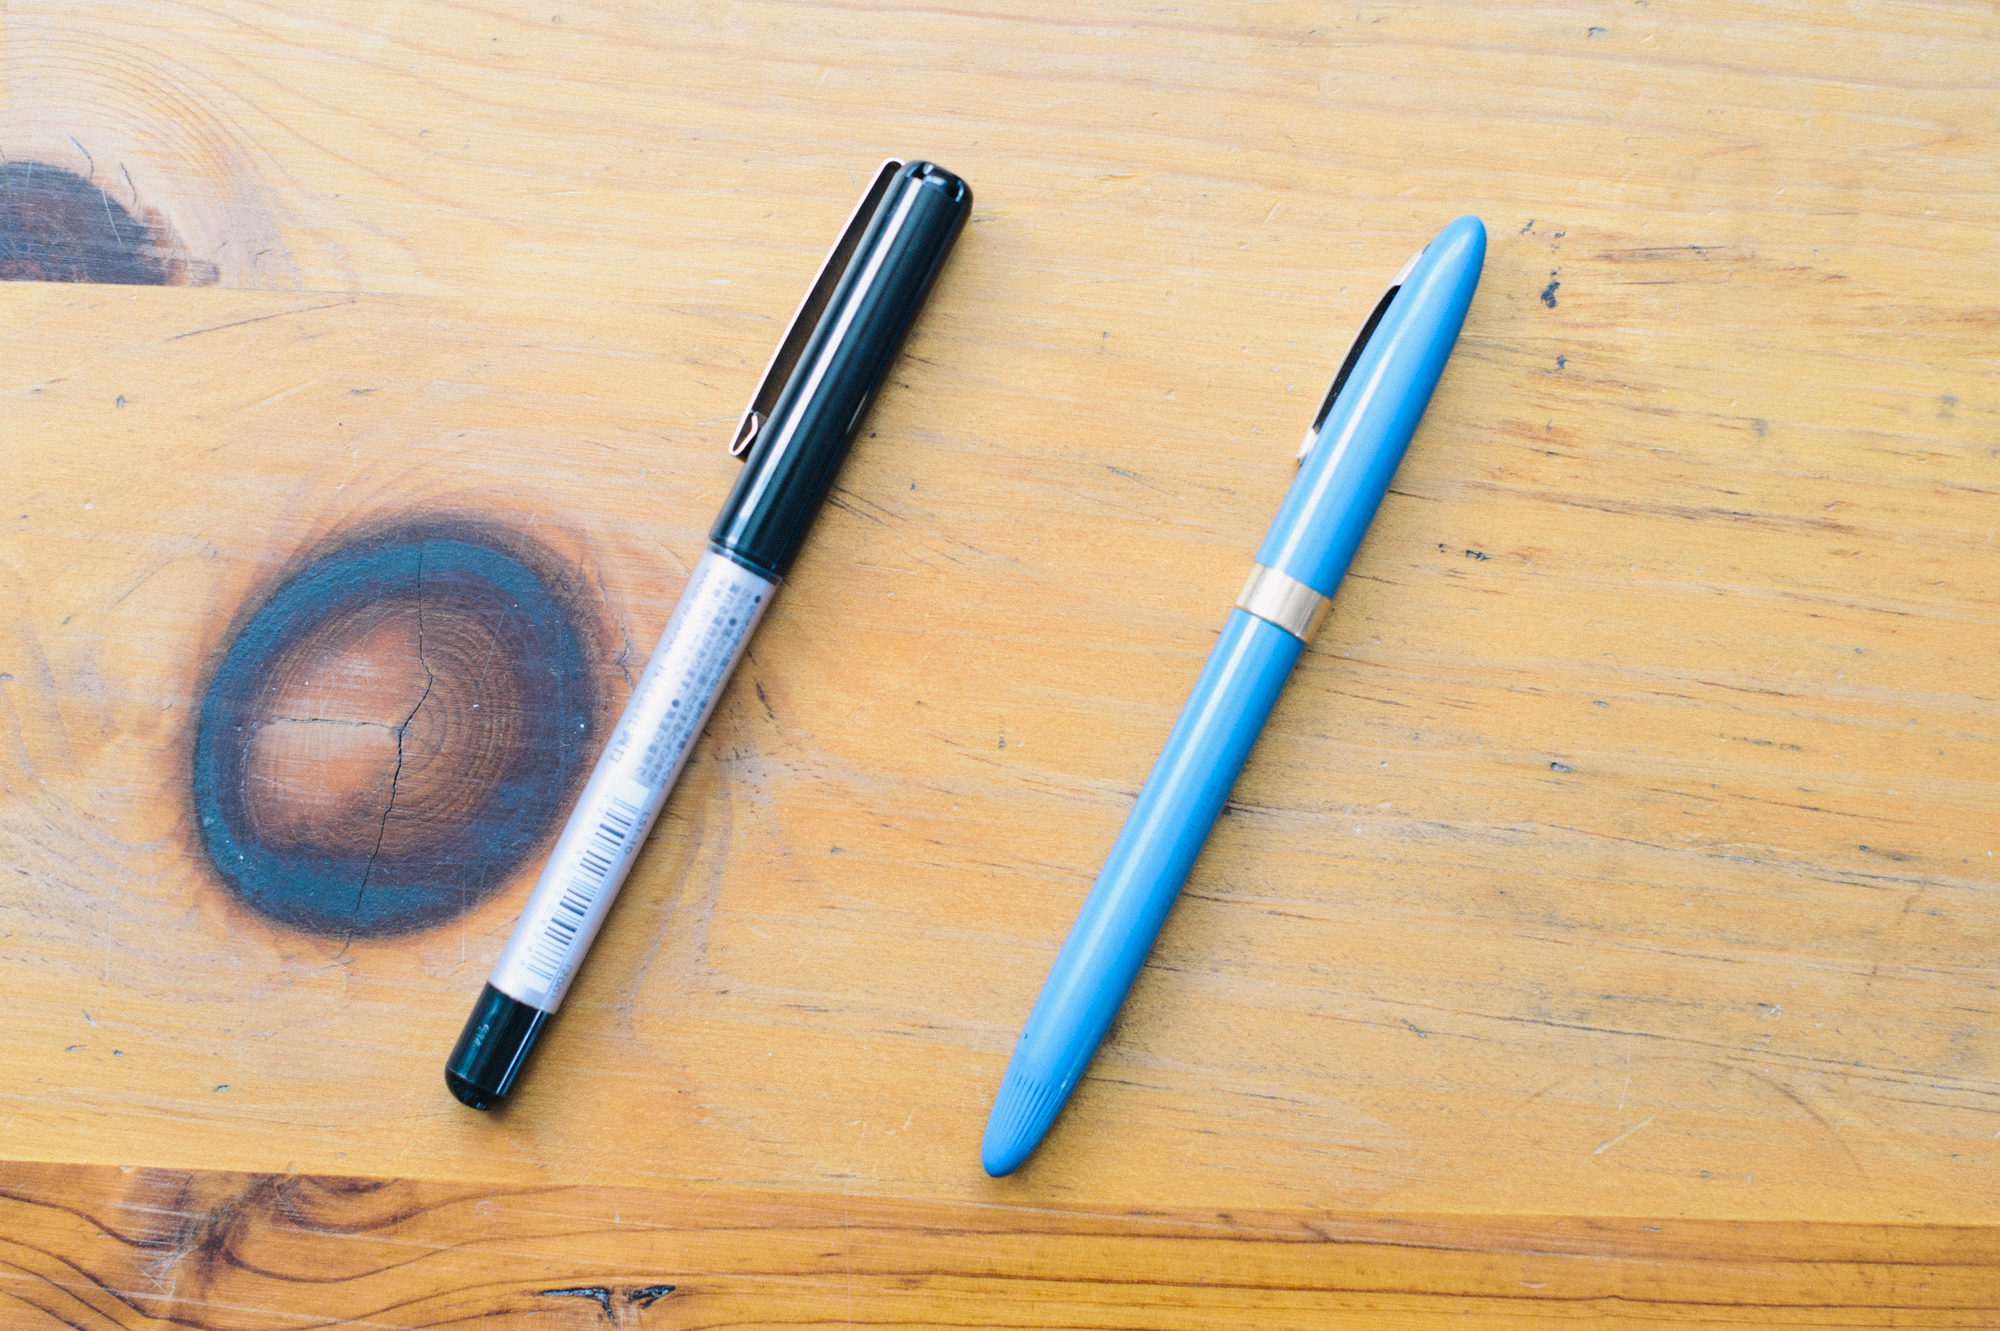 8 Reasons Why You Should Write With A Fountain Pen Each Includes 1 Ball Point And As The Diagram 2